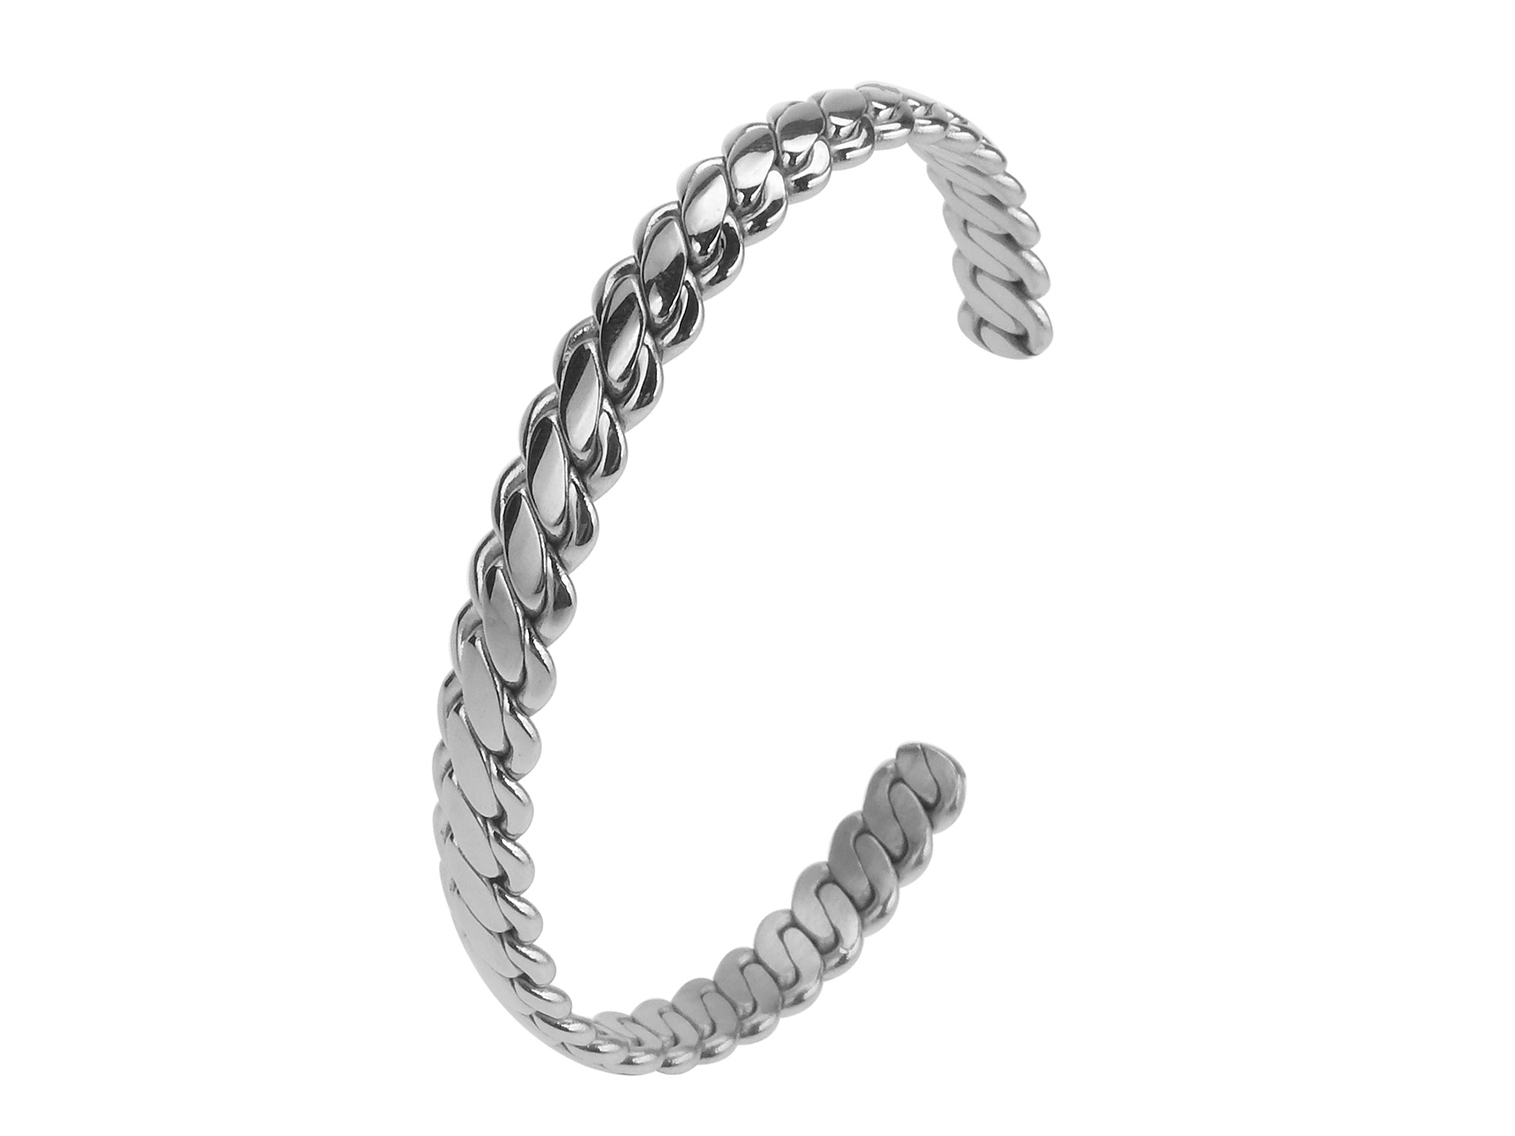 SSB0064R Woven Pattern Stainless Steel Bangle